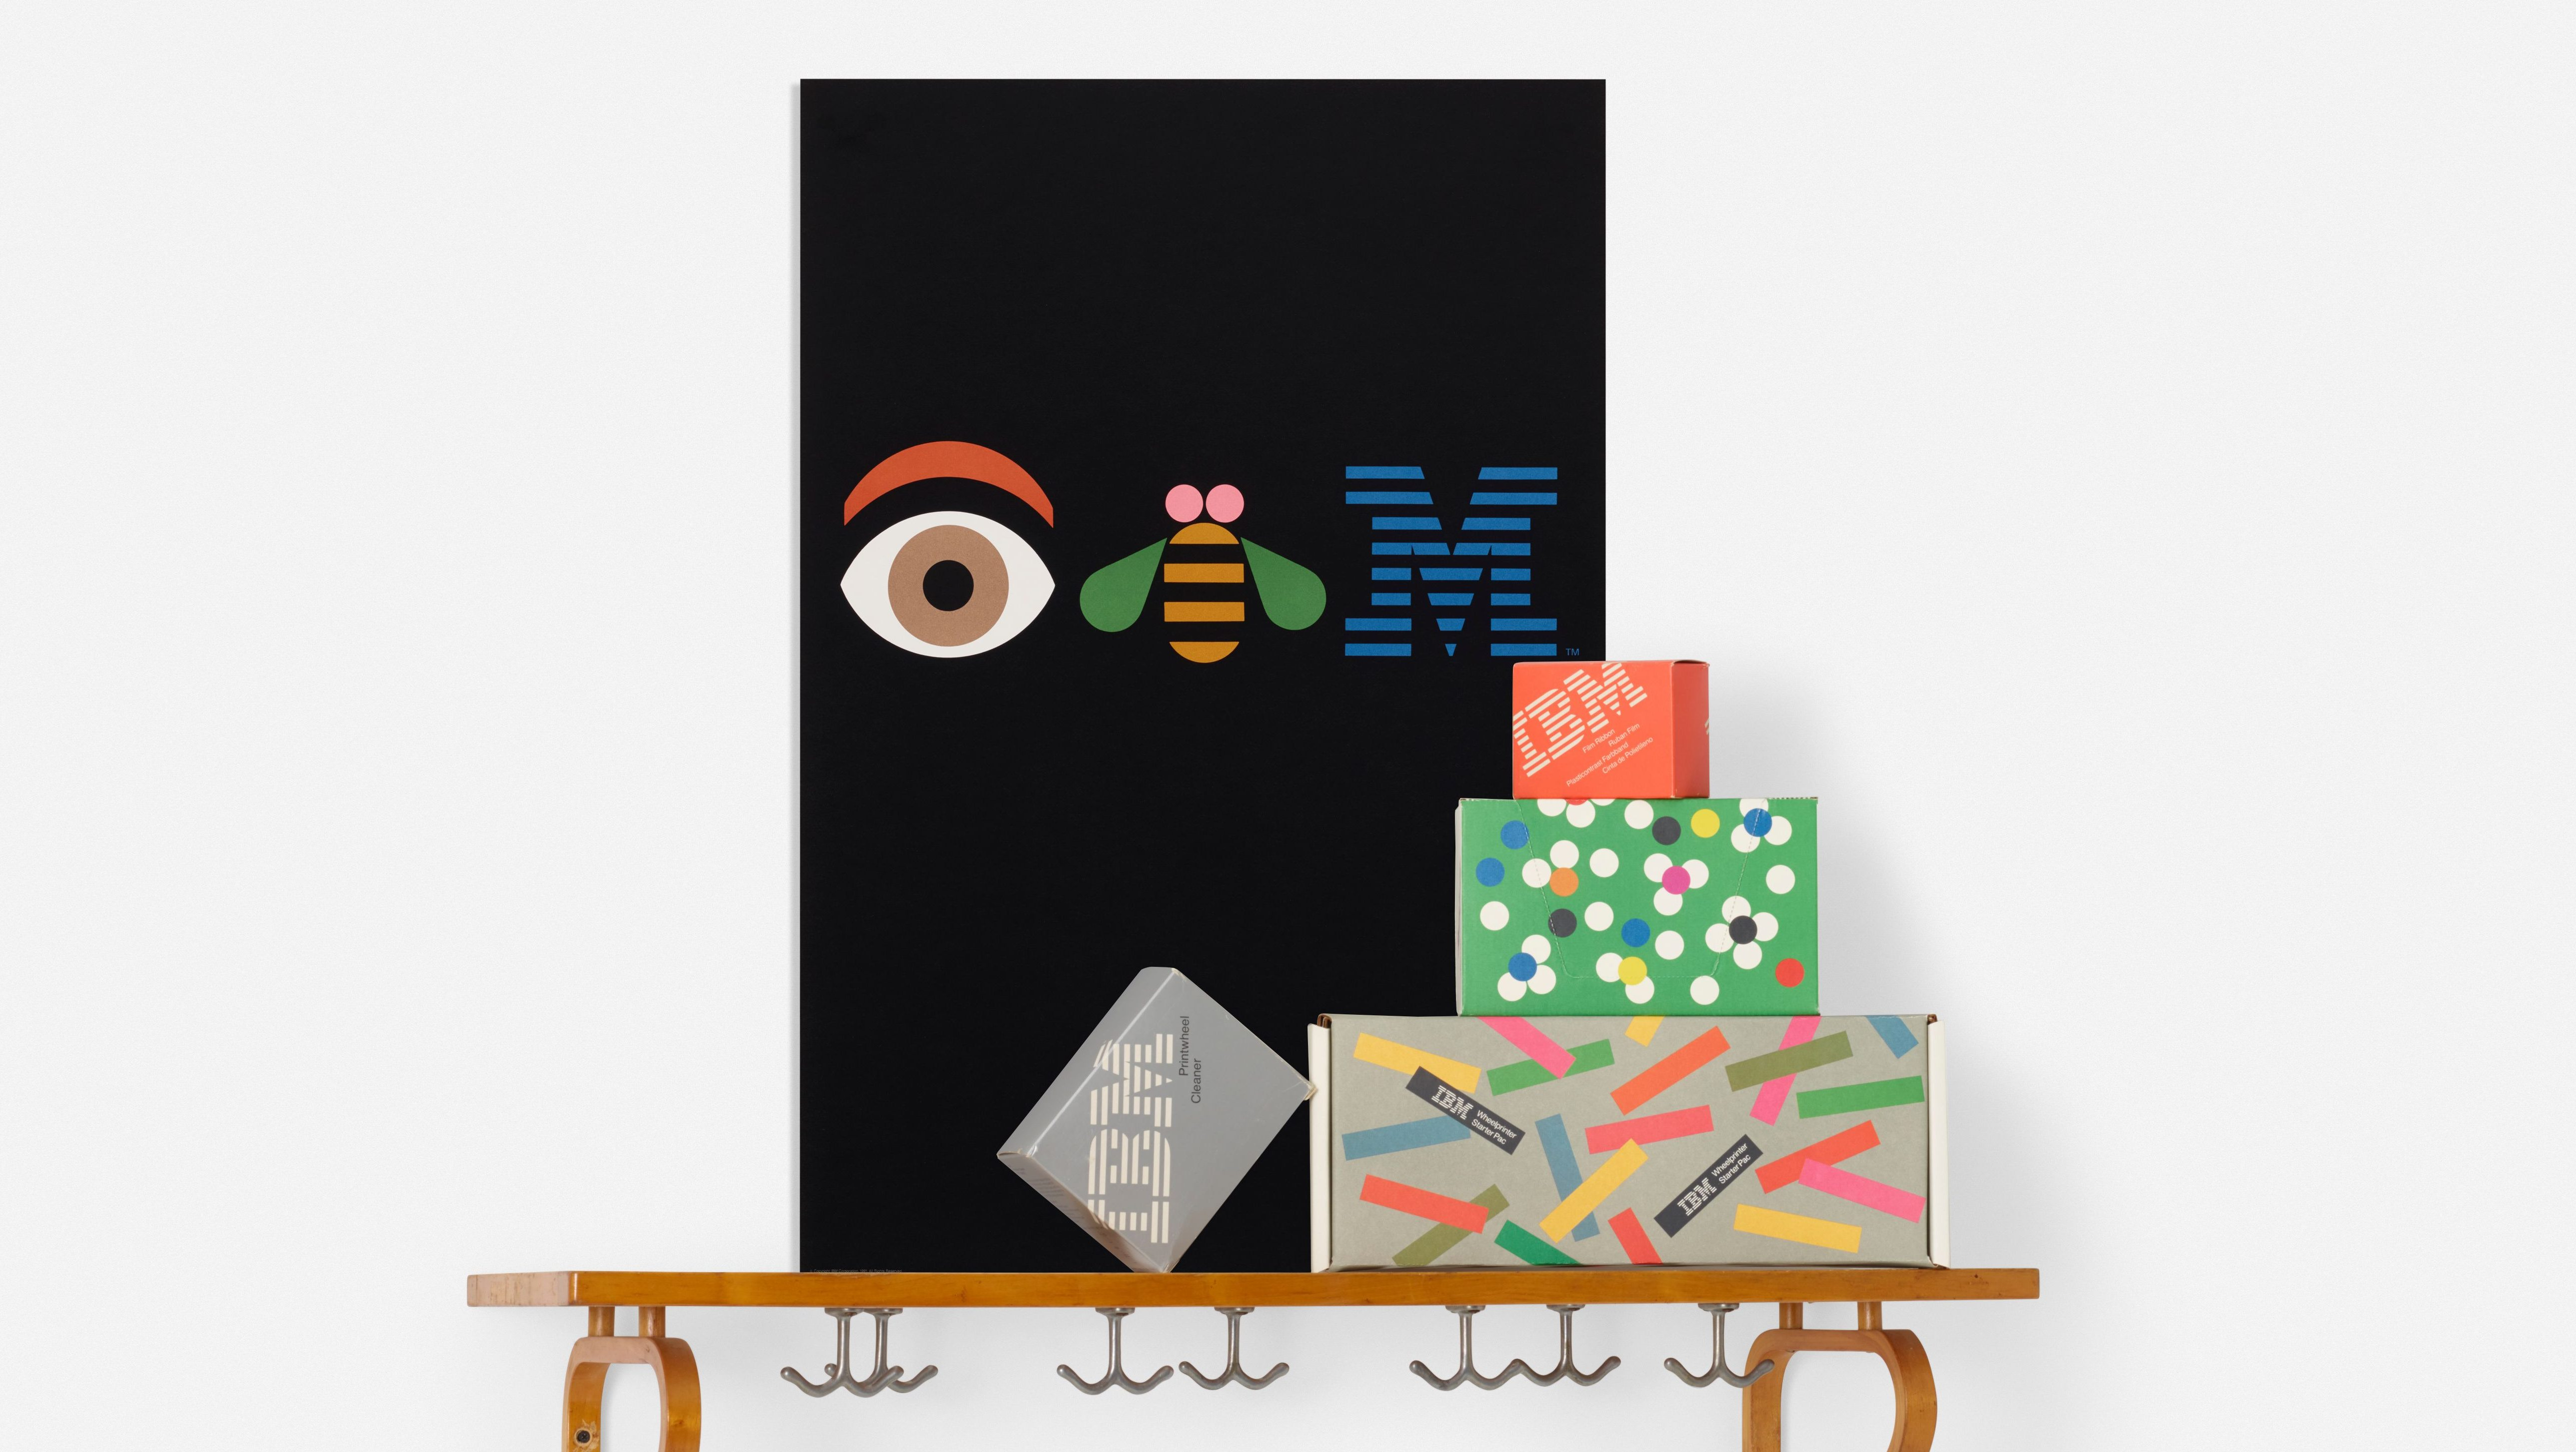 Ibm Logo Designer Paul Rand S Works And Personal Artifacts